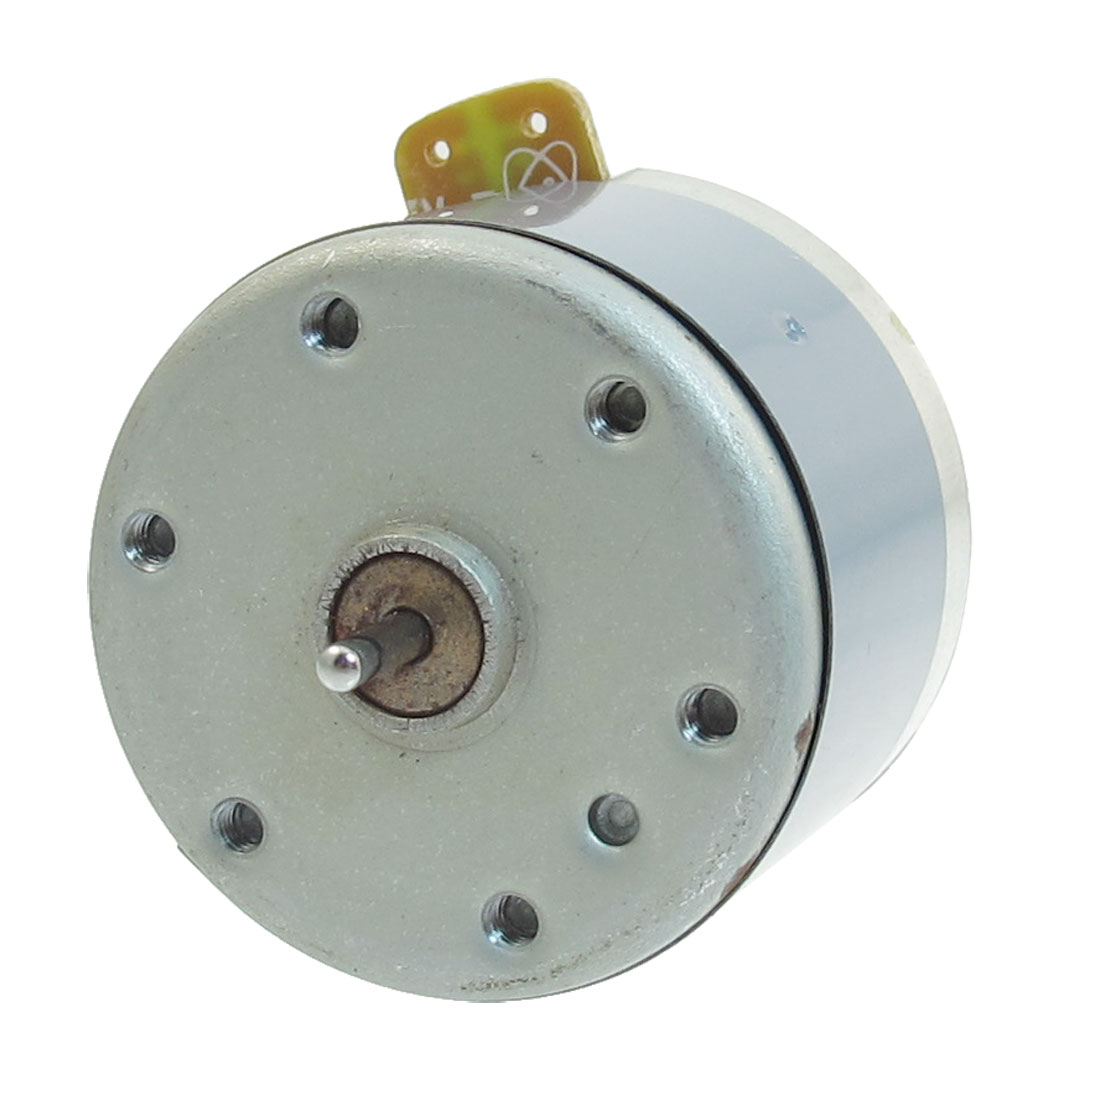 DC 6V 2400 RPM CD VCD DVD Mini Electric Spindle Recorder Motor EG-530AD